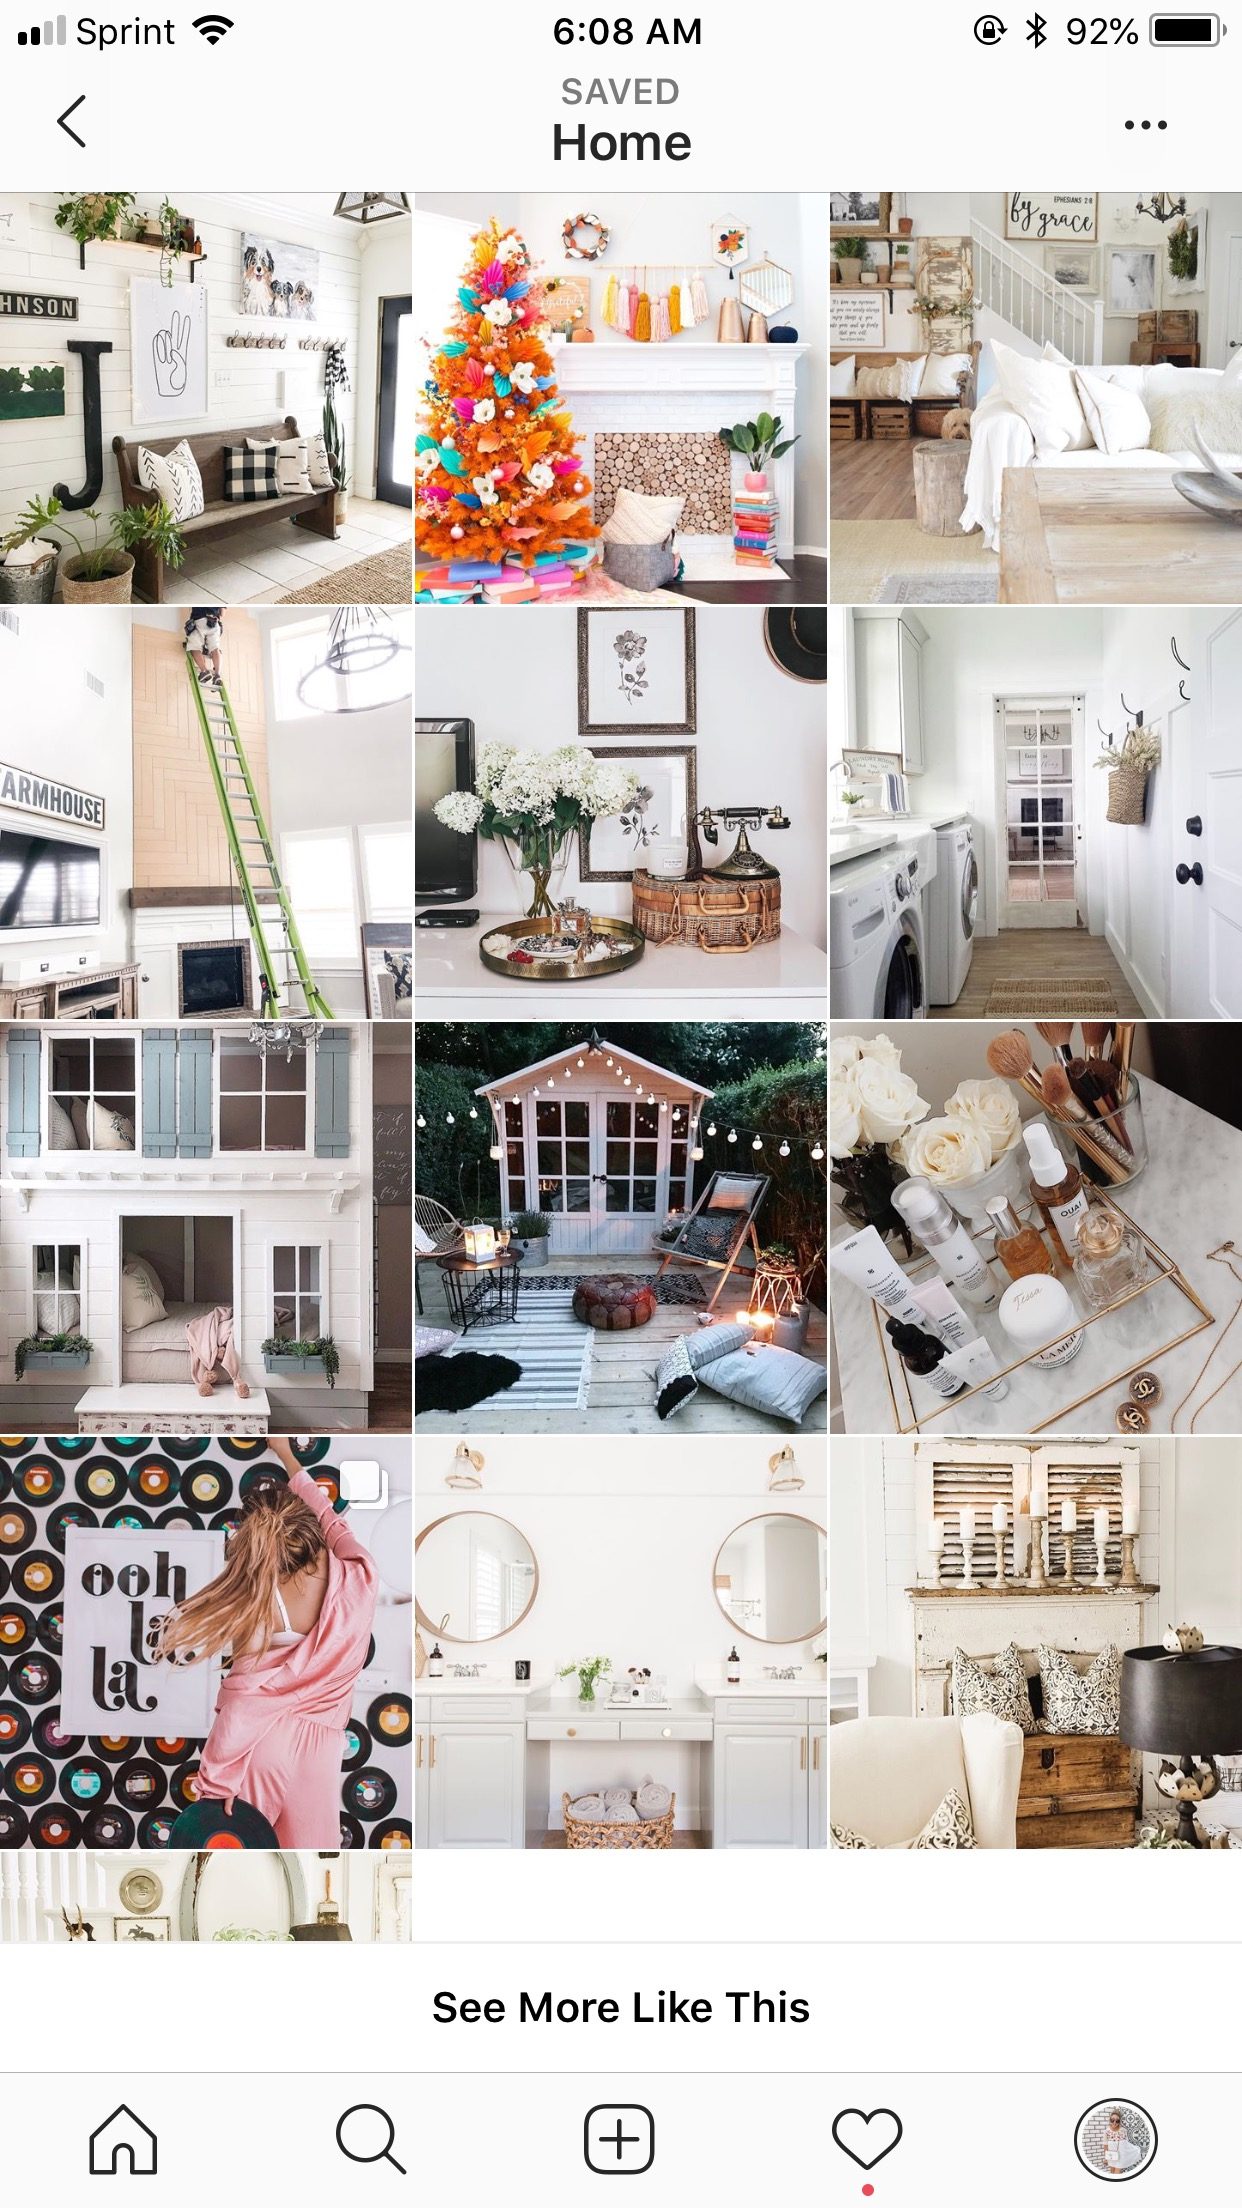 instagram feed- home